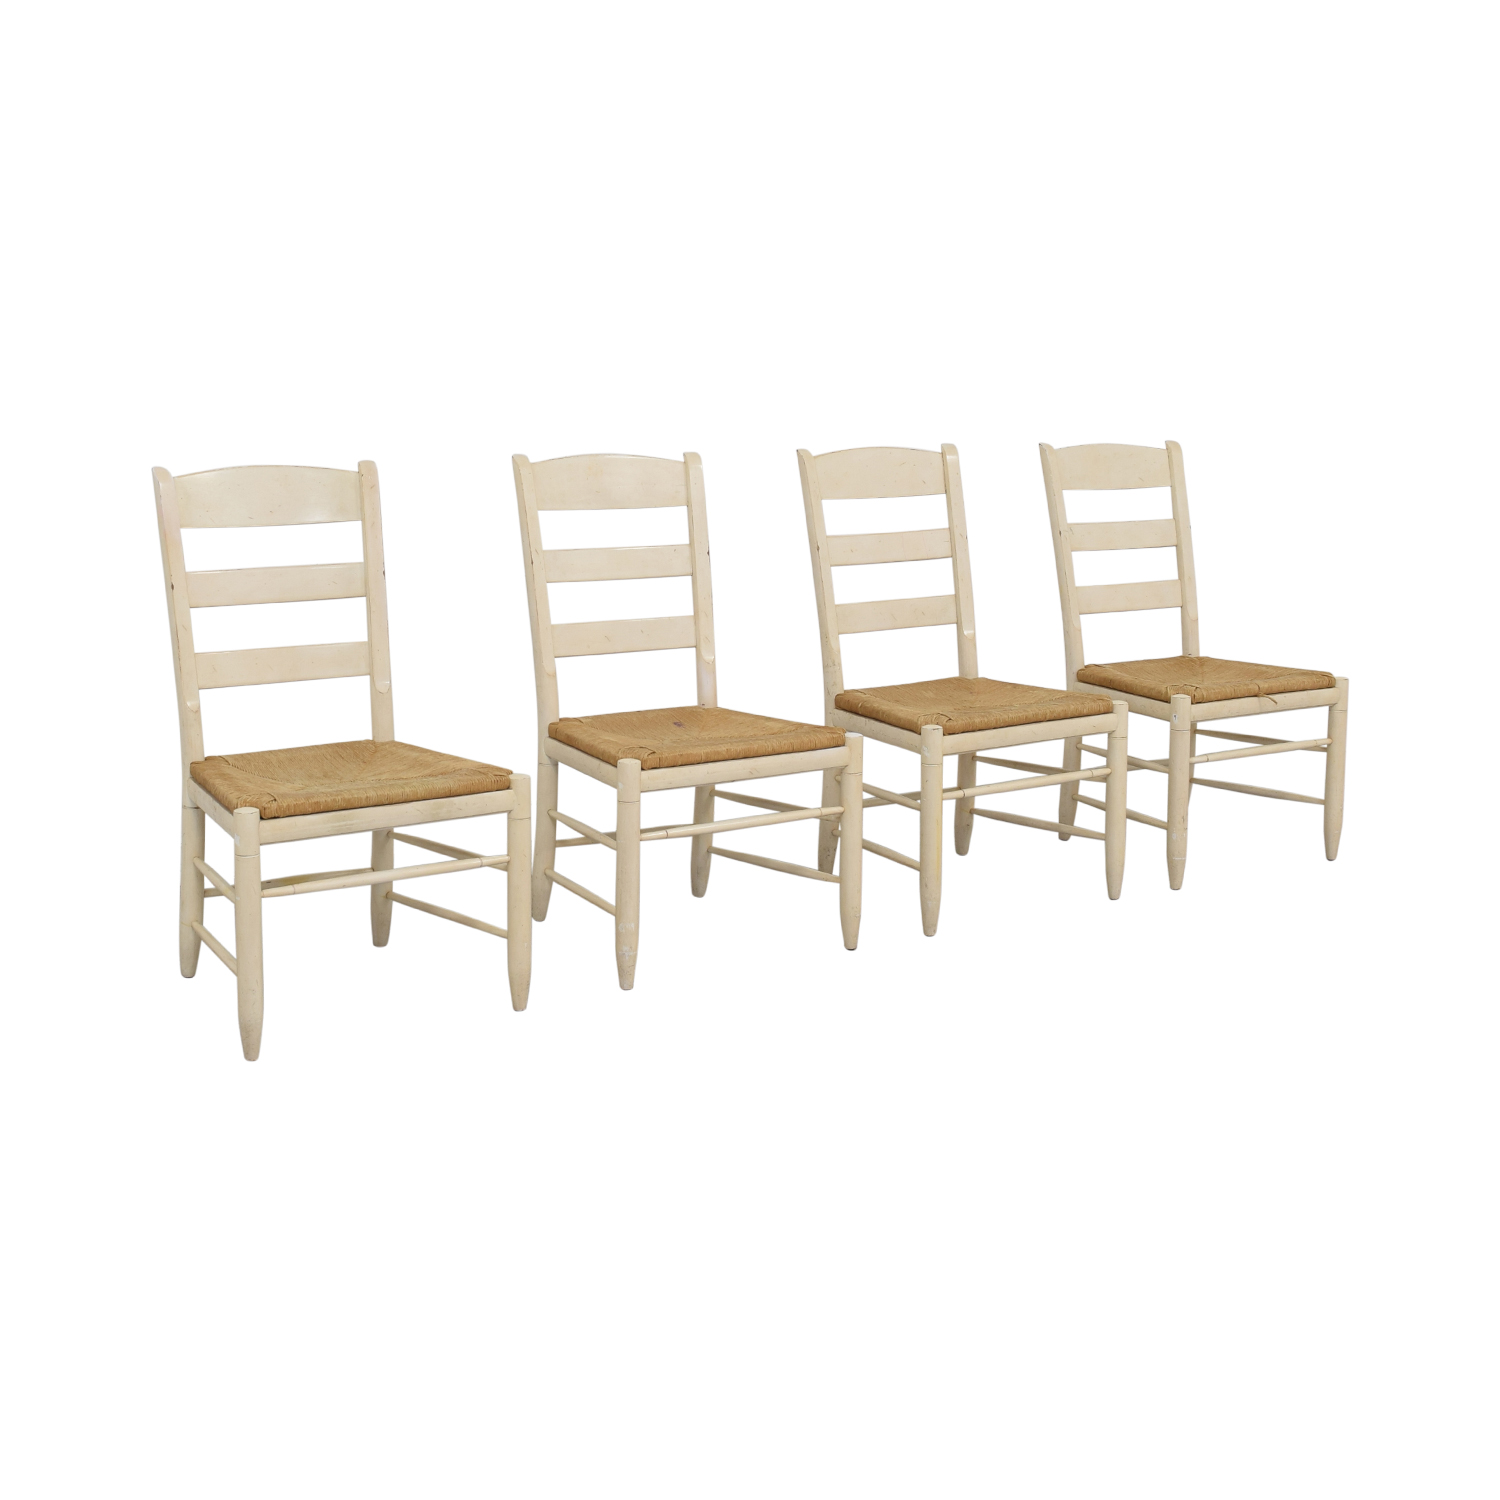 buy Ethan Allen New Country Ladderback White Side Chairs Ethan Allen Dining Chairs